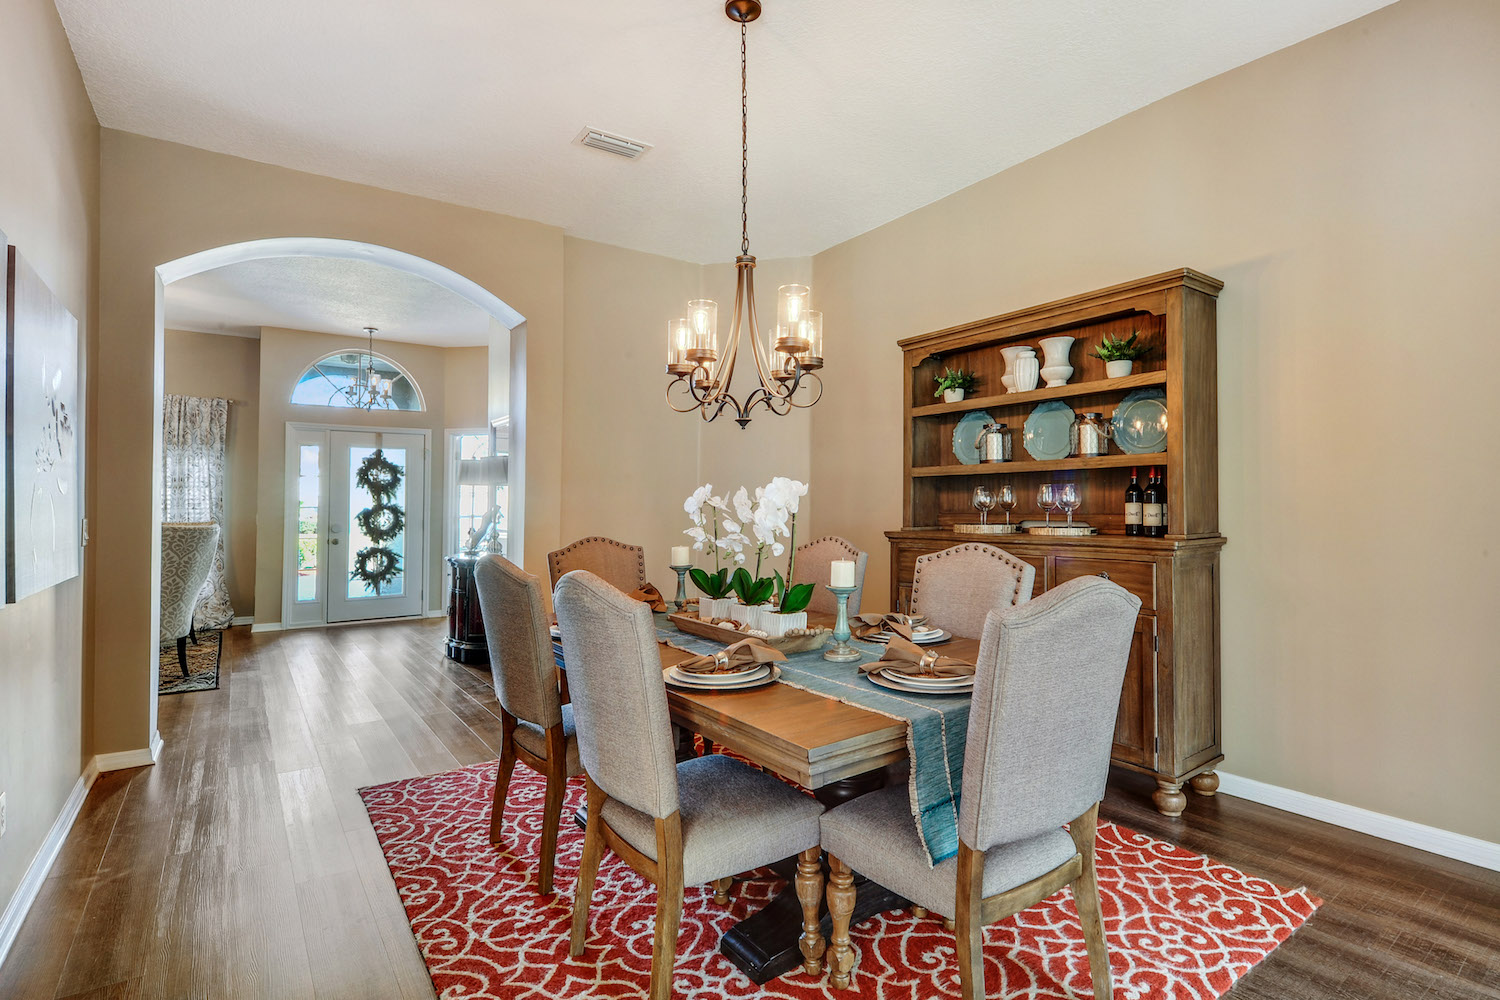 Sell Or Dwell Jacksonville Home Staging Photo 02   White Orchid Interiors